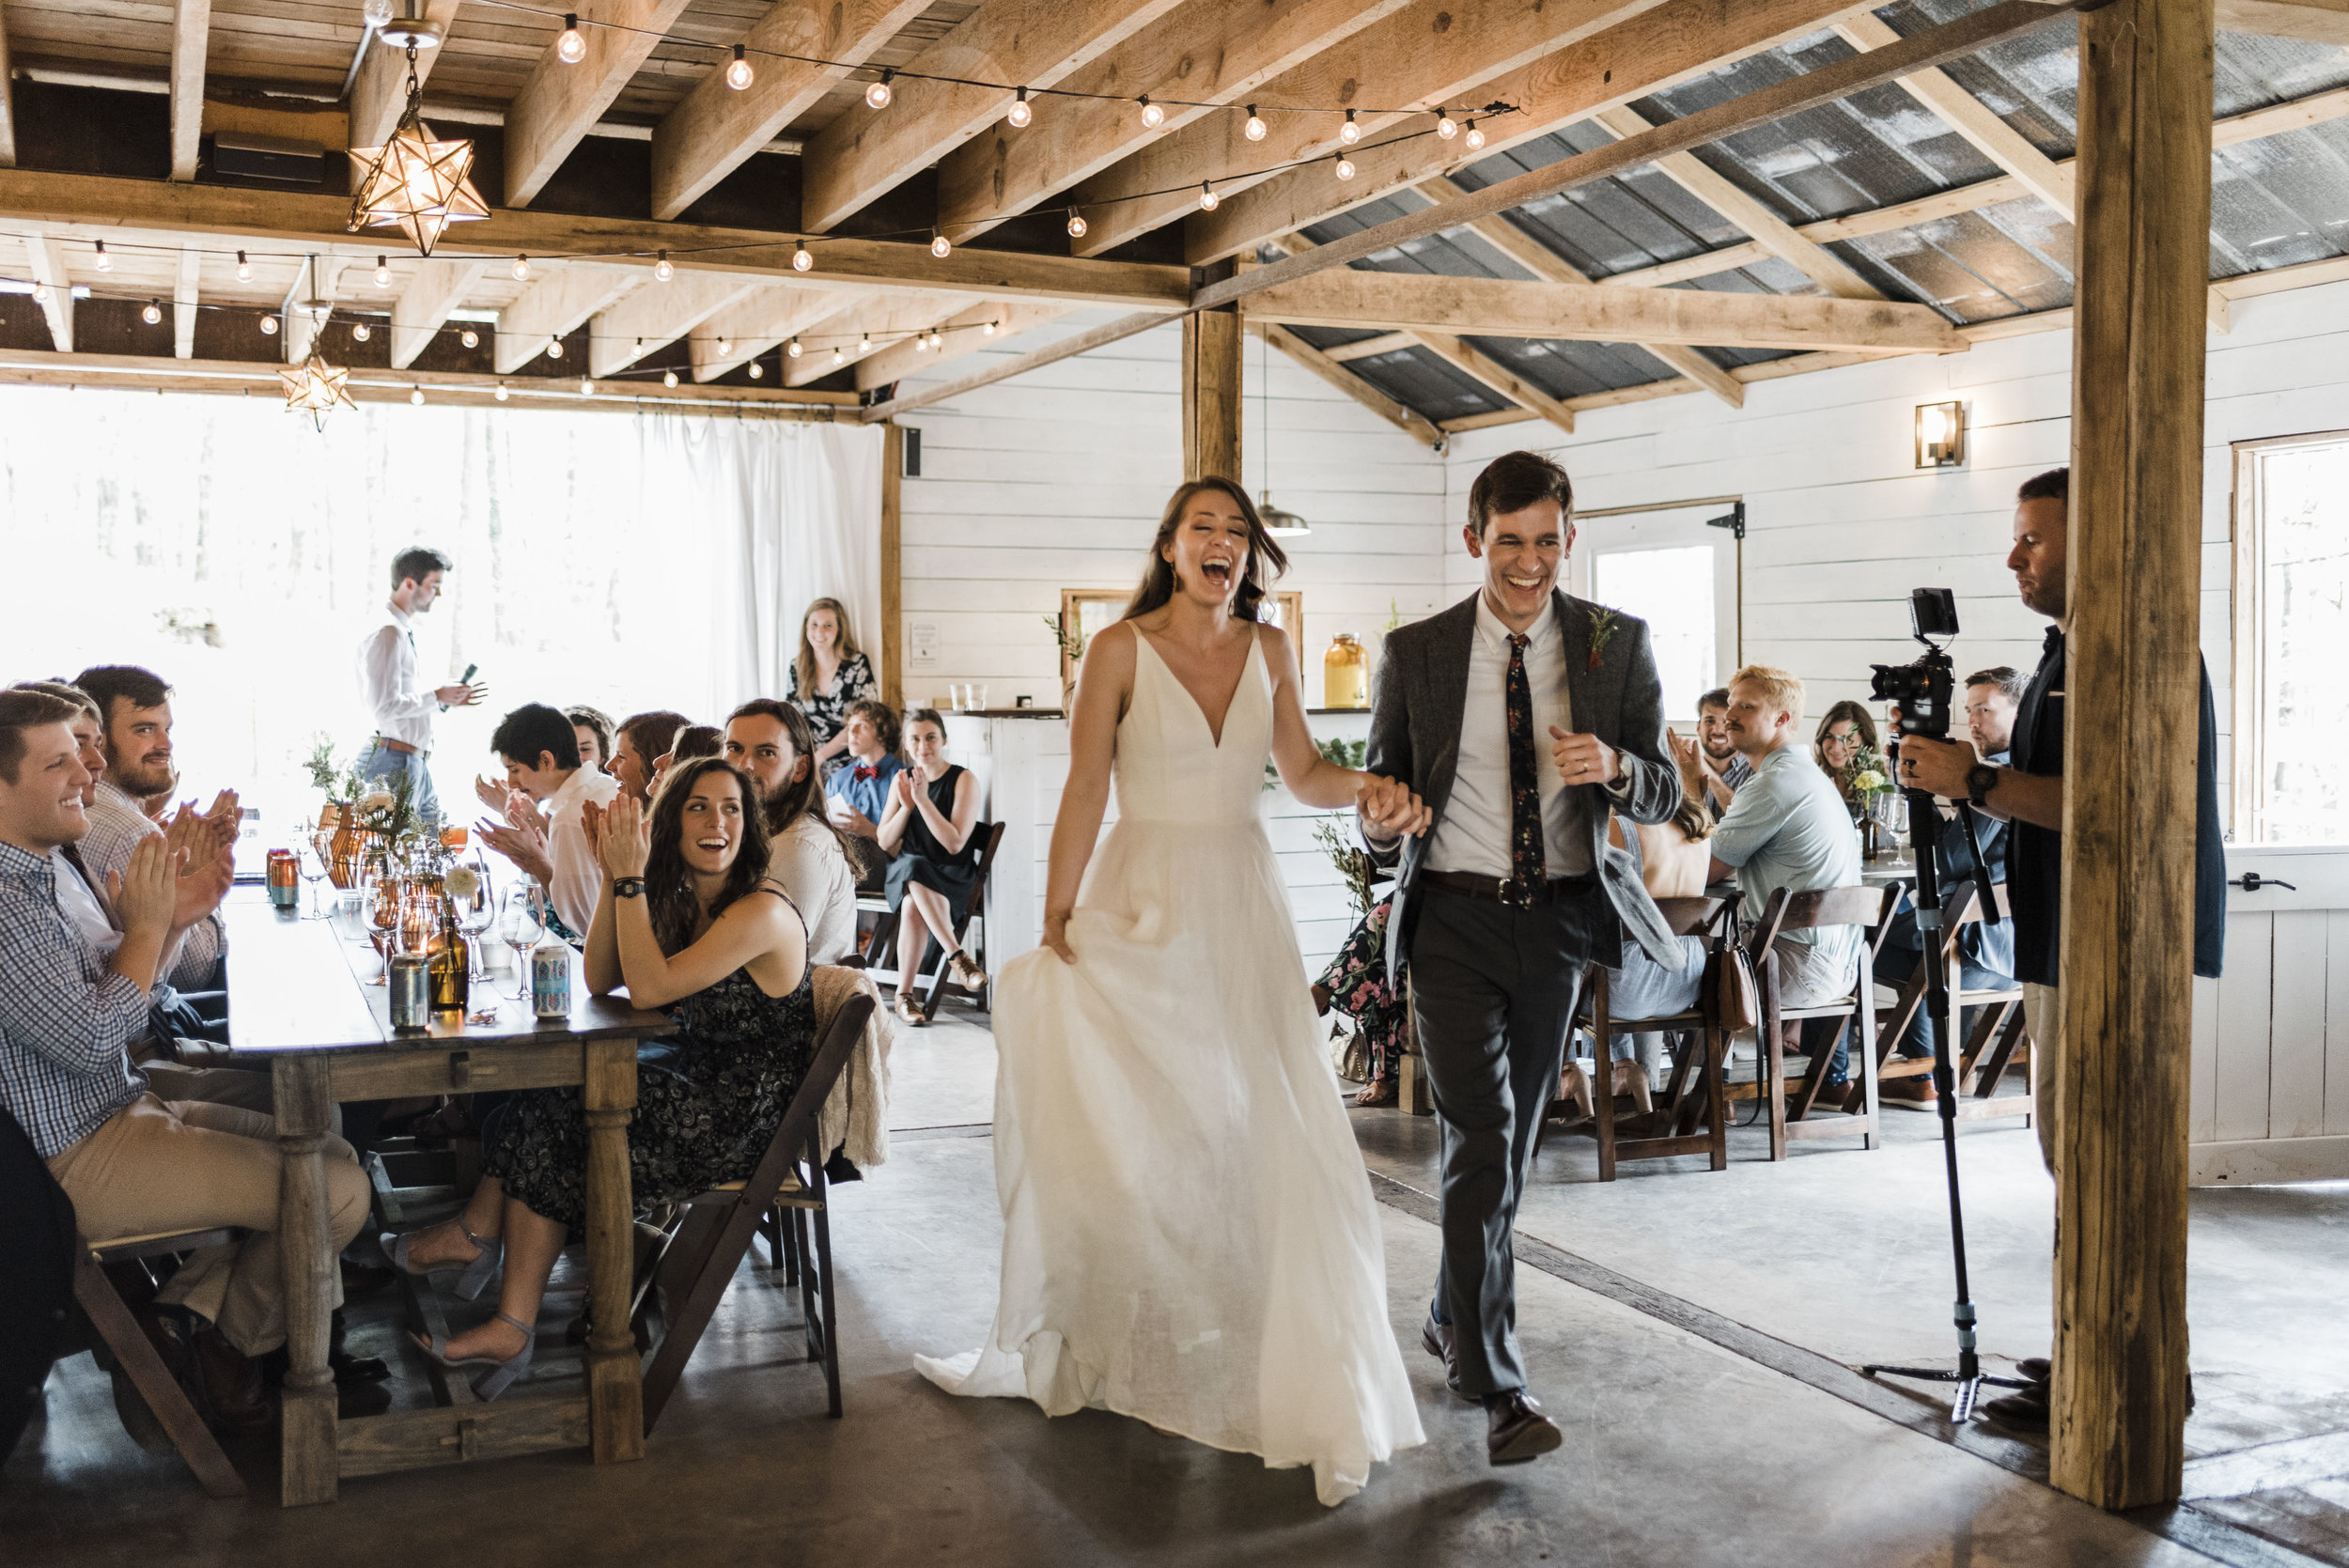 wedding bridal party introduction chattanooga Tennessee barn